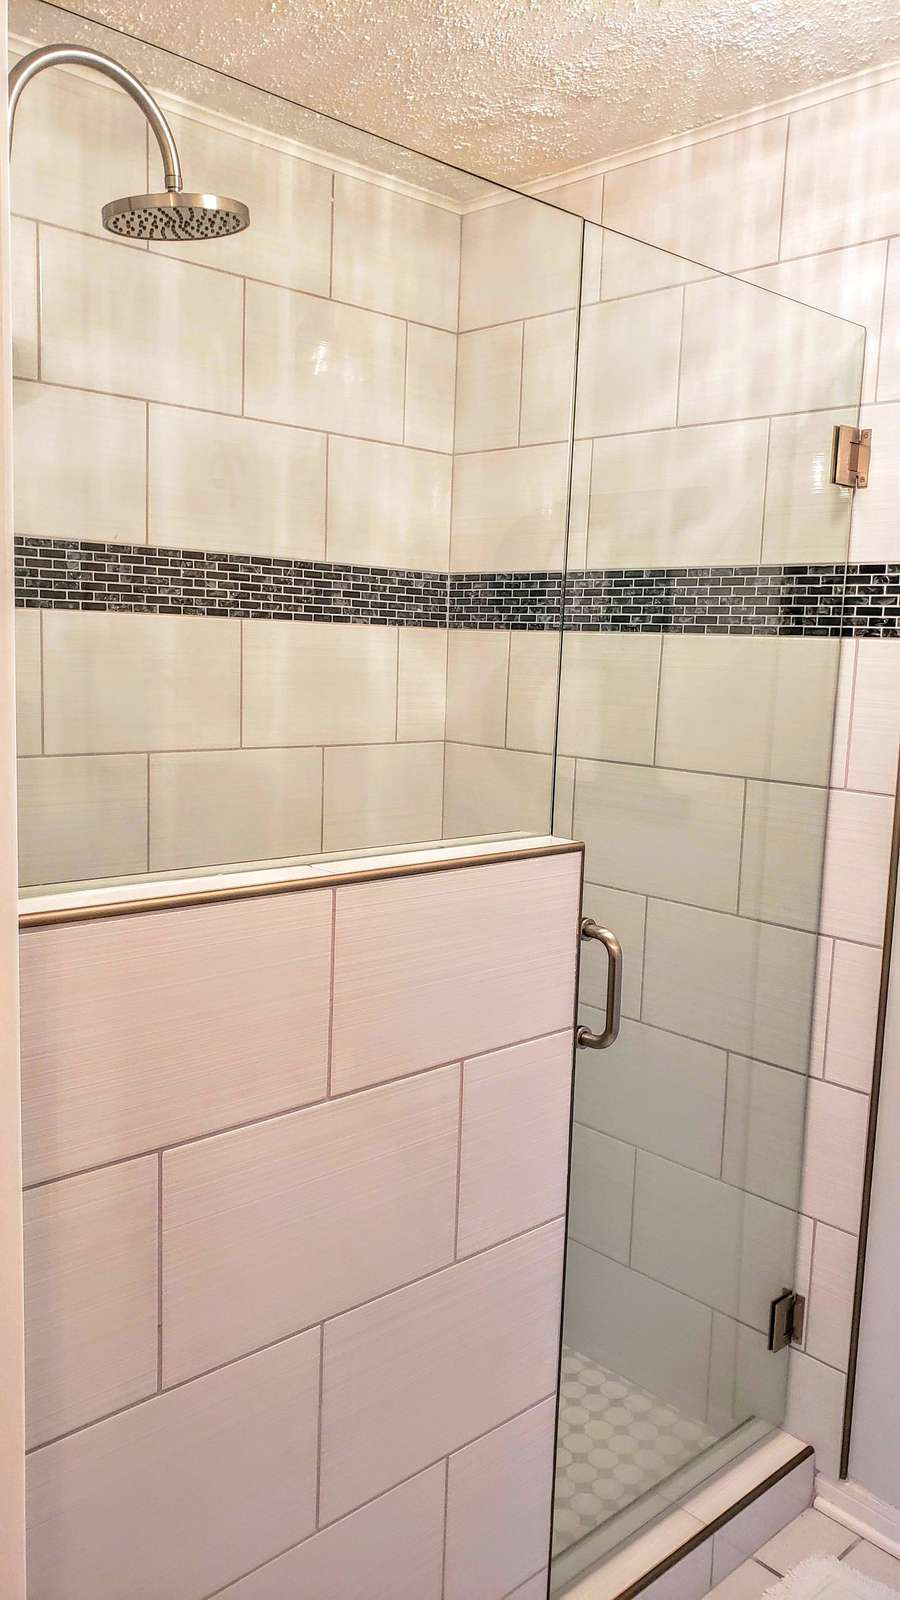 Completely updated walk-in shower and fixtures